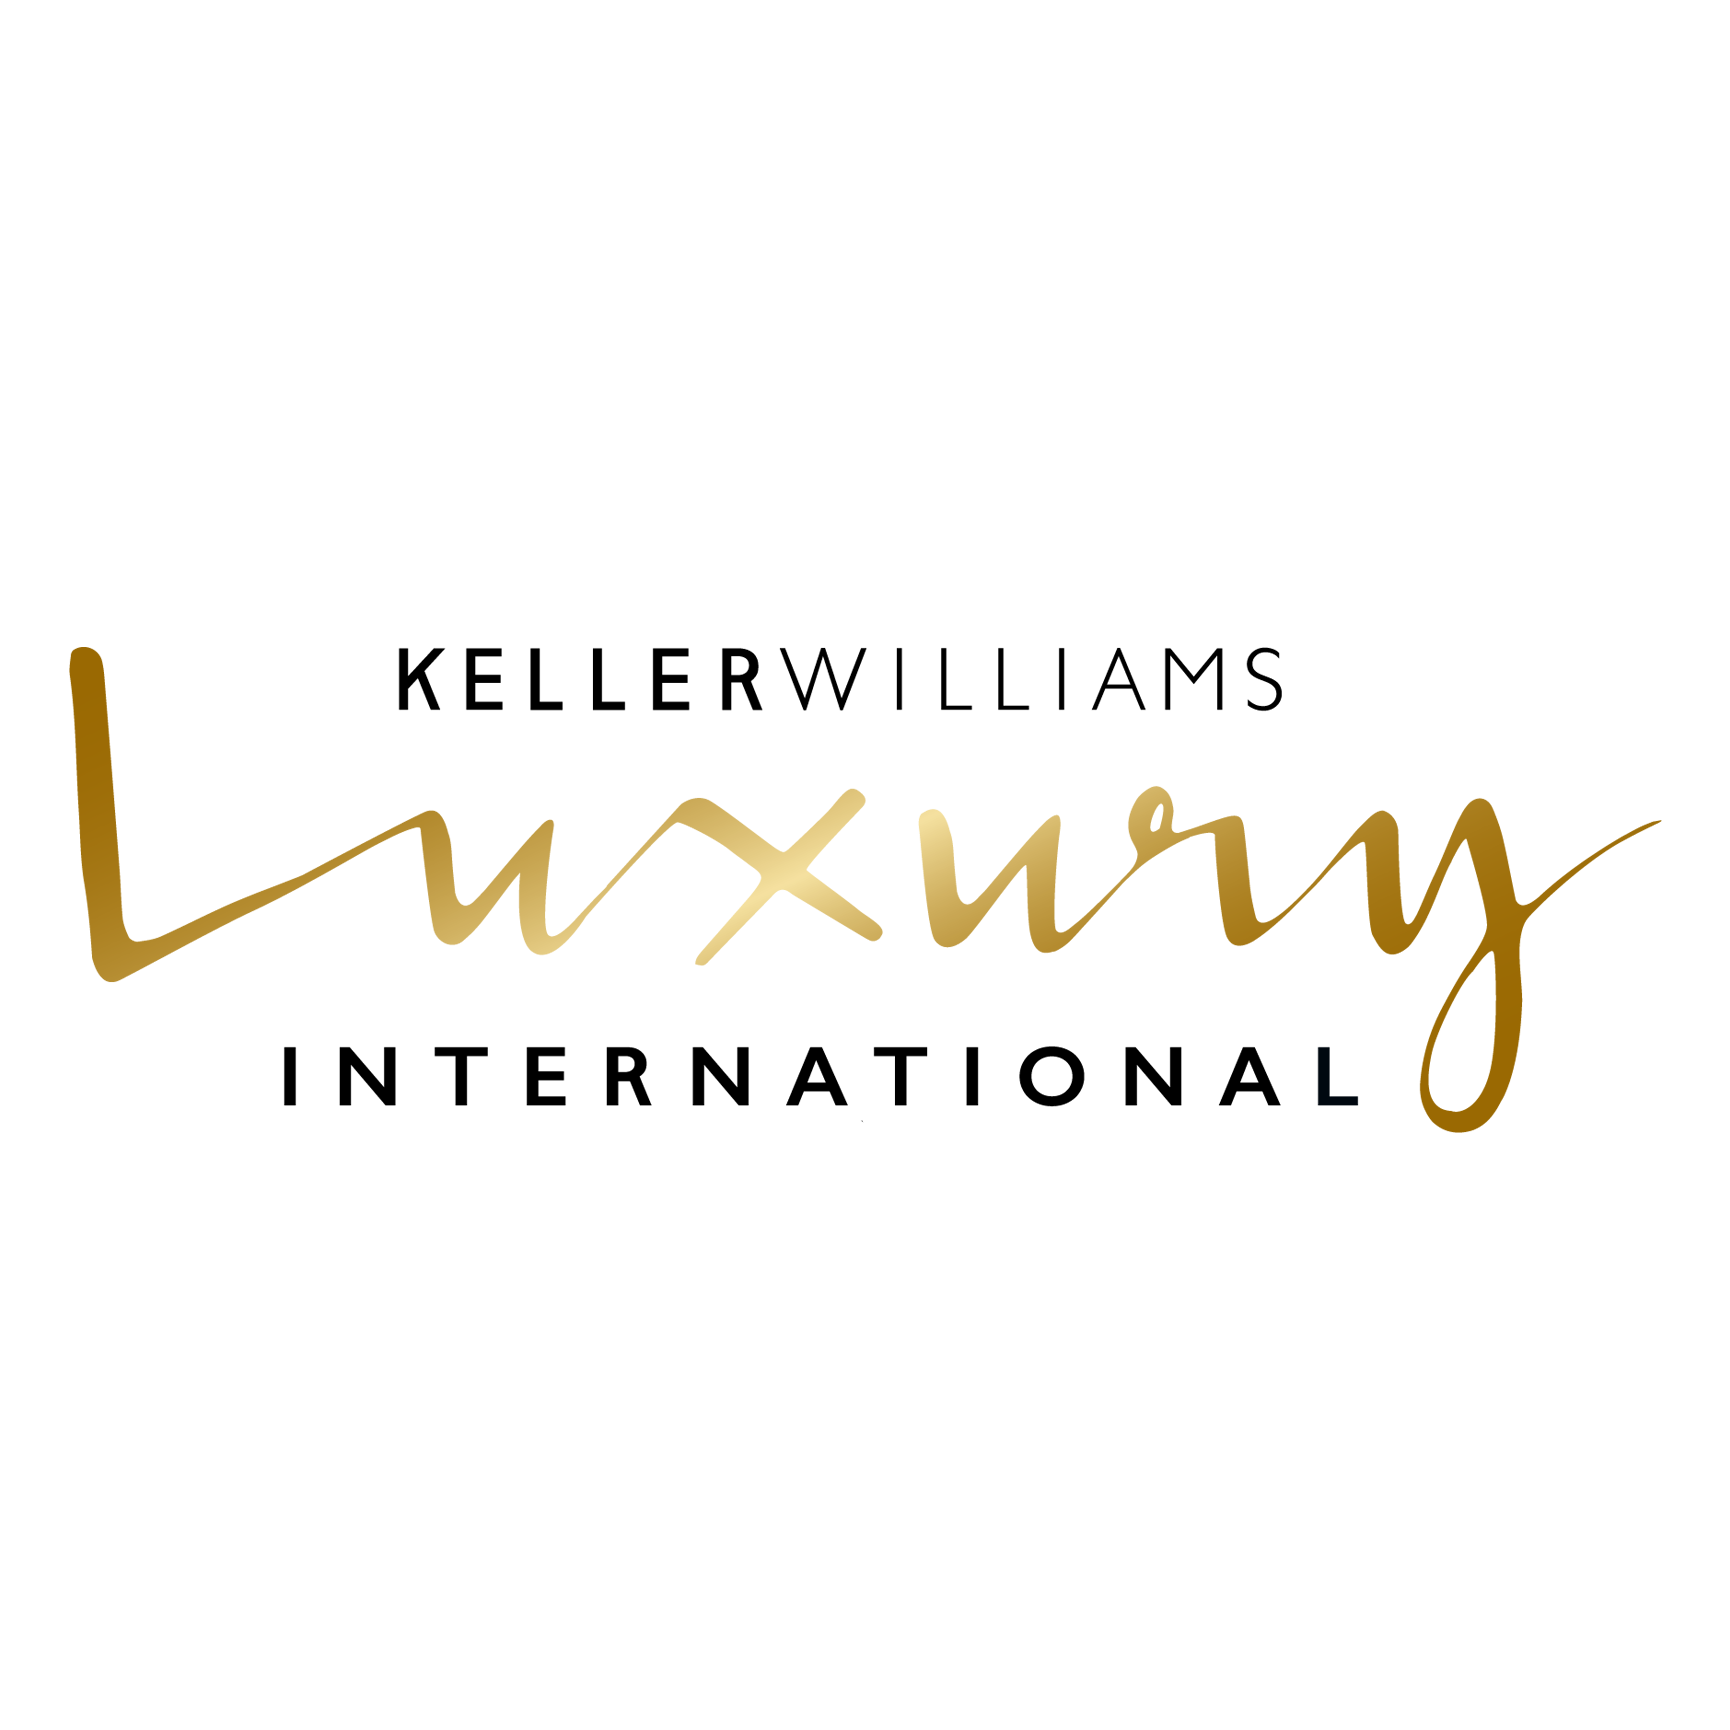 KW_LuxuryInternational_Logo_RGB_K-Gold.png